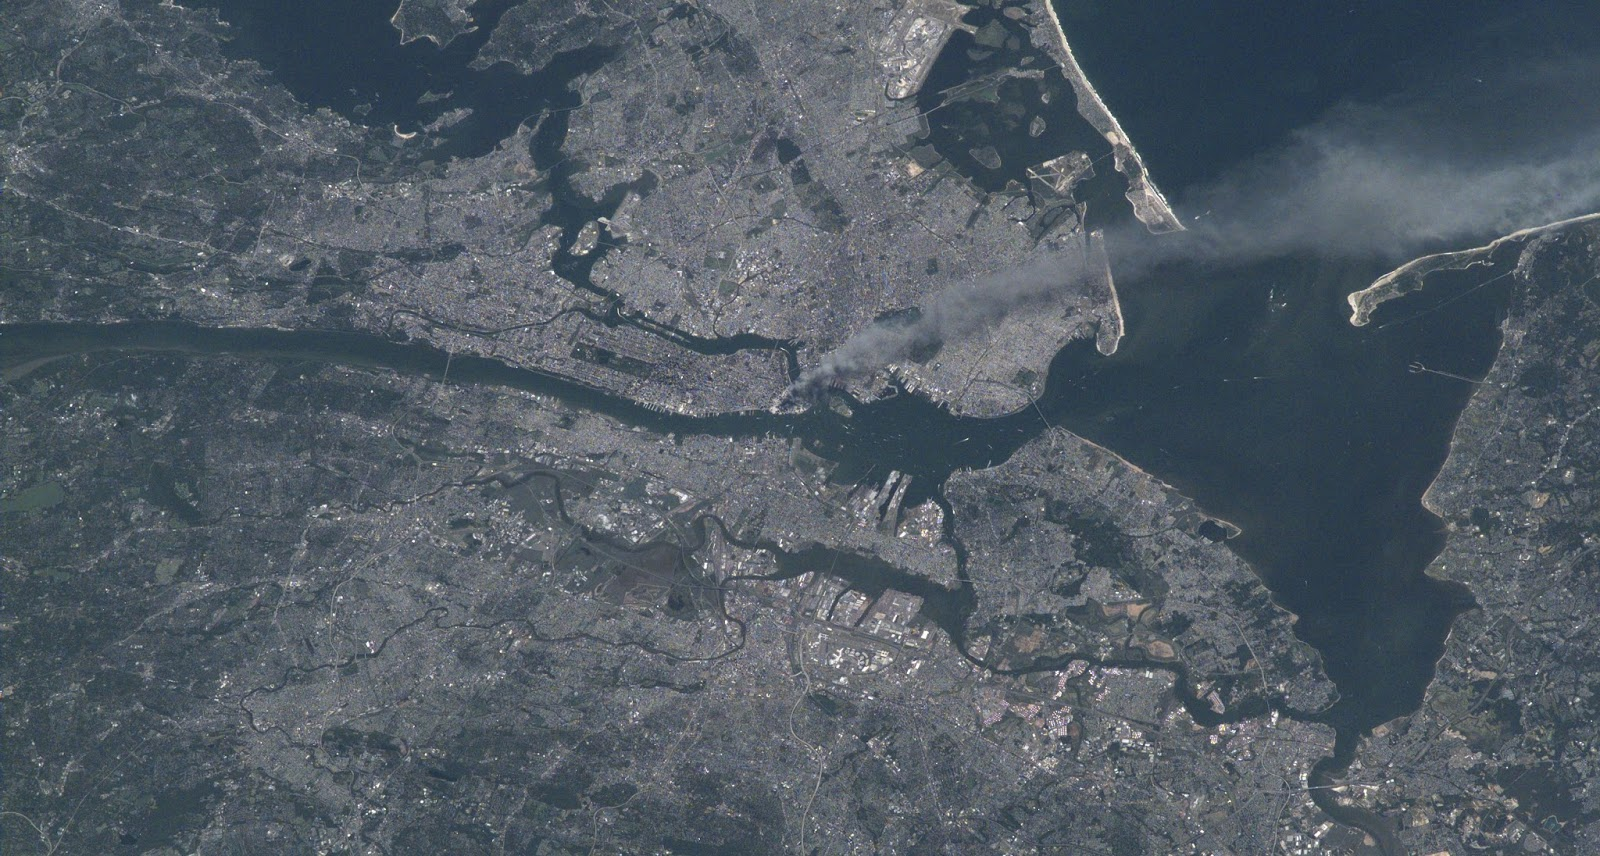 Smoke plume from the World Trade Center phtographed from the International Space Station